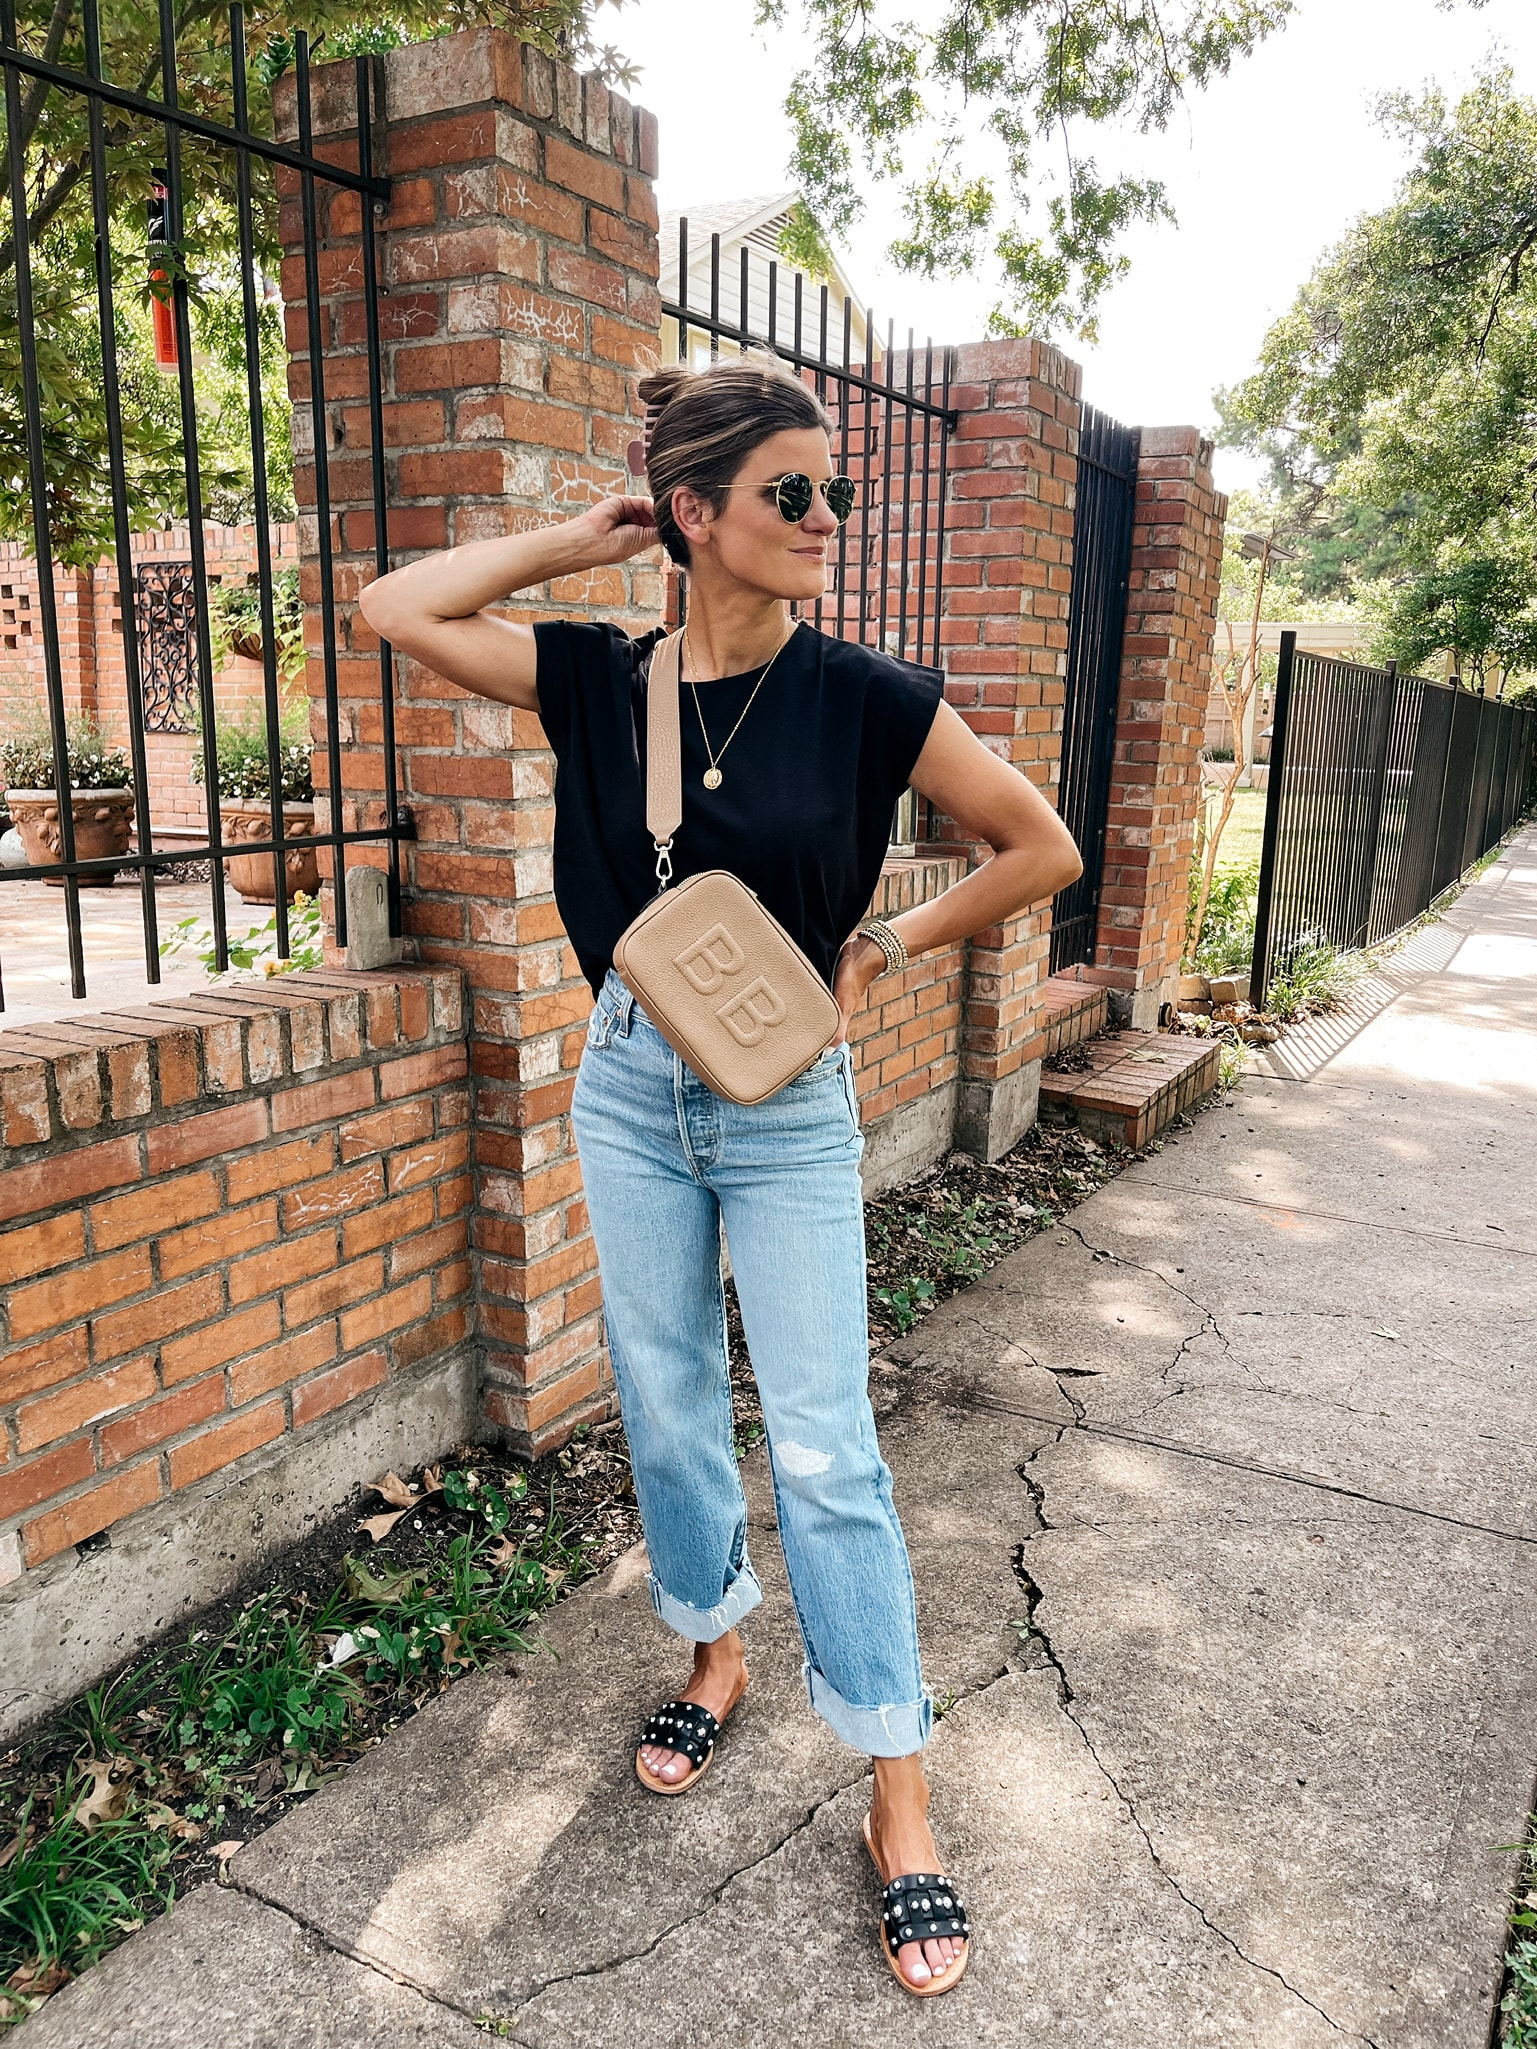 Brighton Butler wearing black tee and light wash jeans